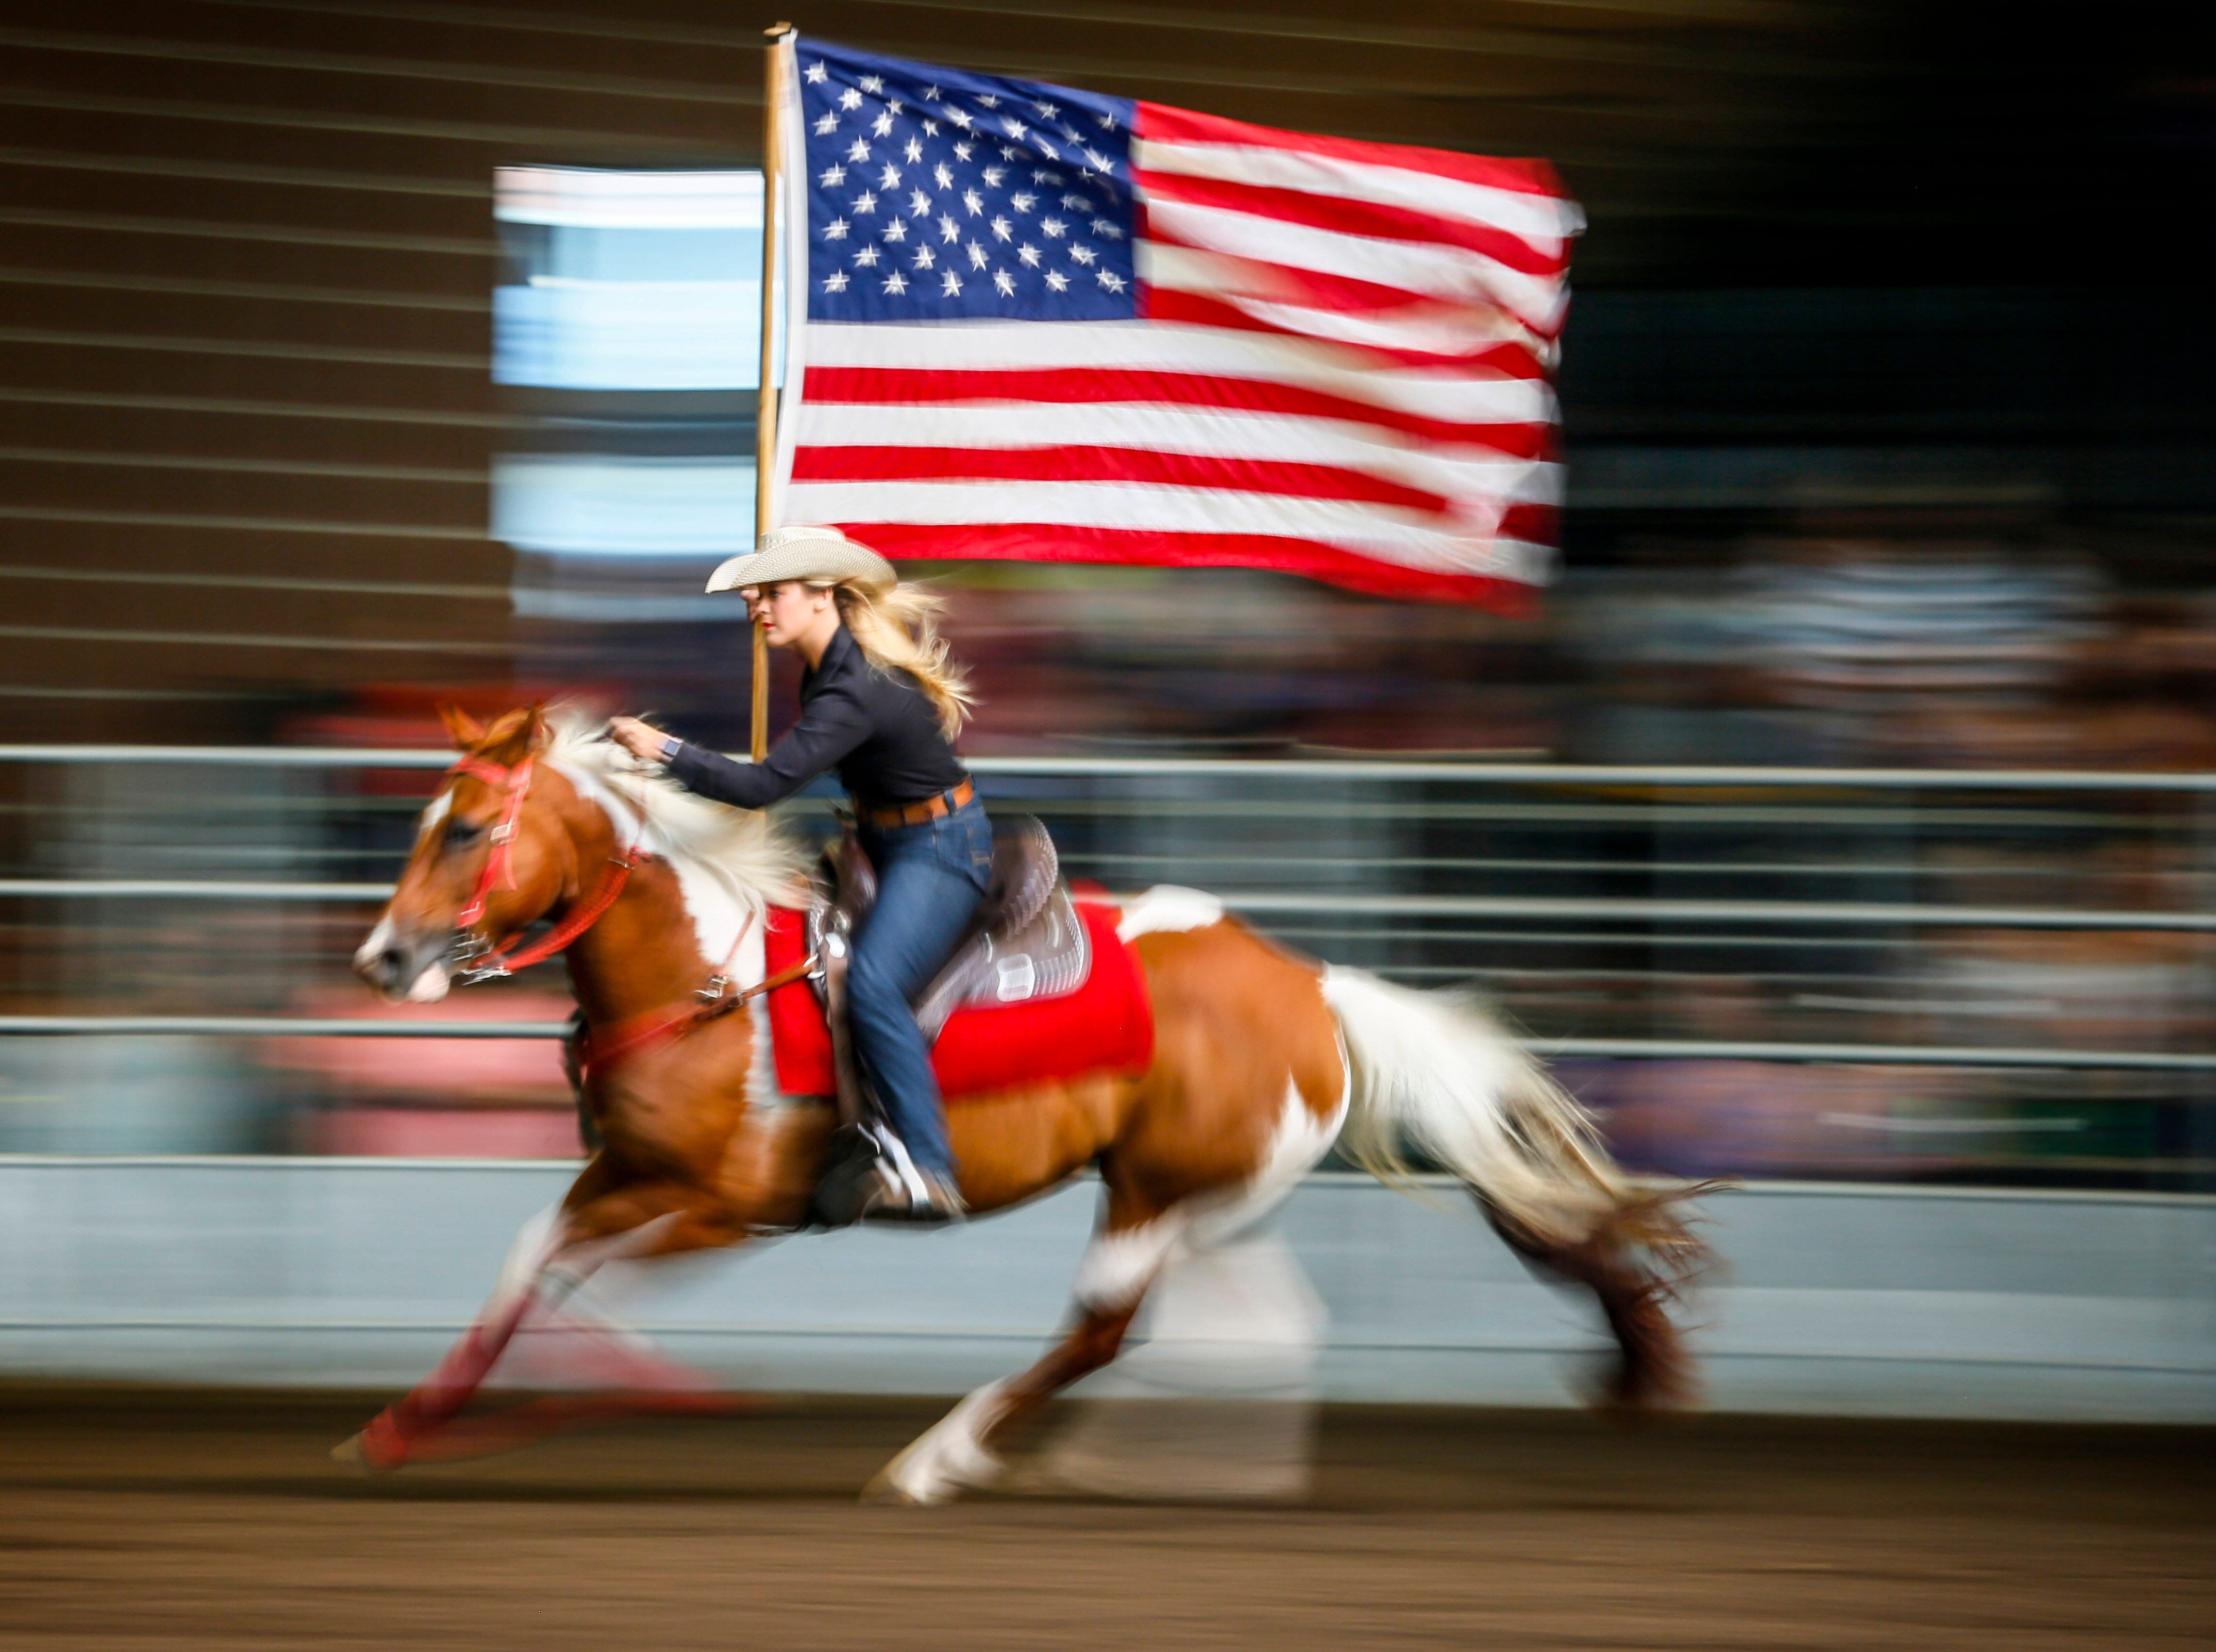 Brittany Abernathy rides with the flag during the national anthem before the Cowgirl Queen Contest at the Iowa State Fair Friday, Aug. 10, 2018.